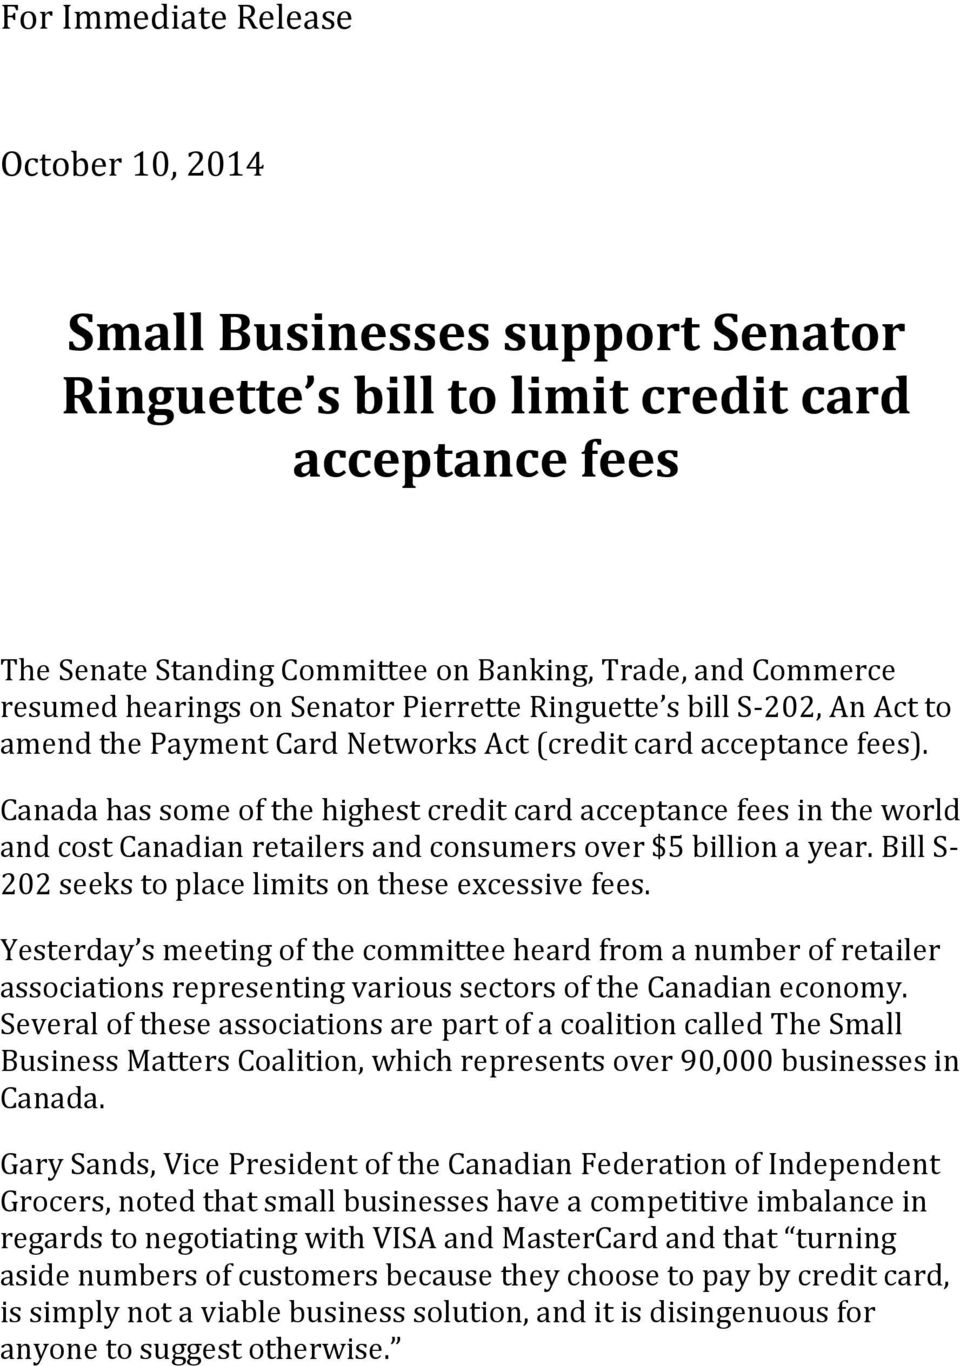 Canada has some of the highest credit card acceptance fees in the world and cost Canadian retailers and consumers over $5 billion a year. Bill S- 202 seeks to place limits on these excessive fees.